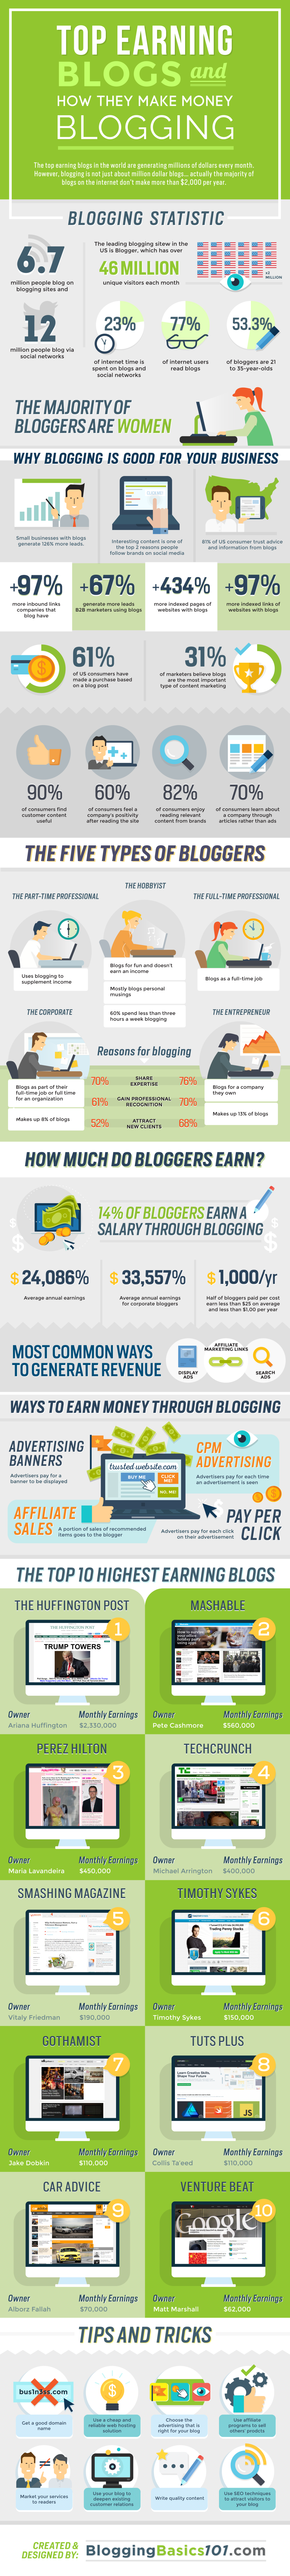 Top Earning Blogs and How they Make Money Blogging